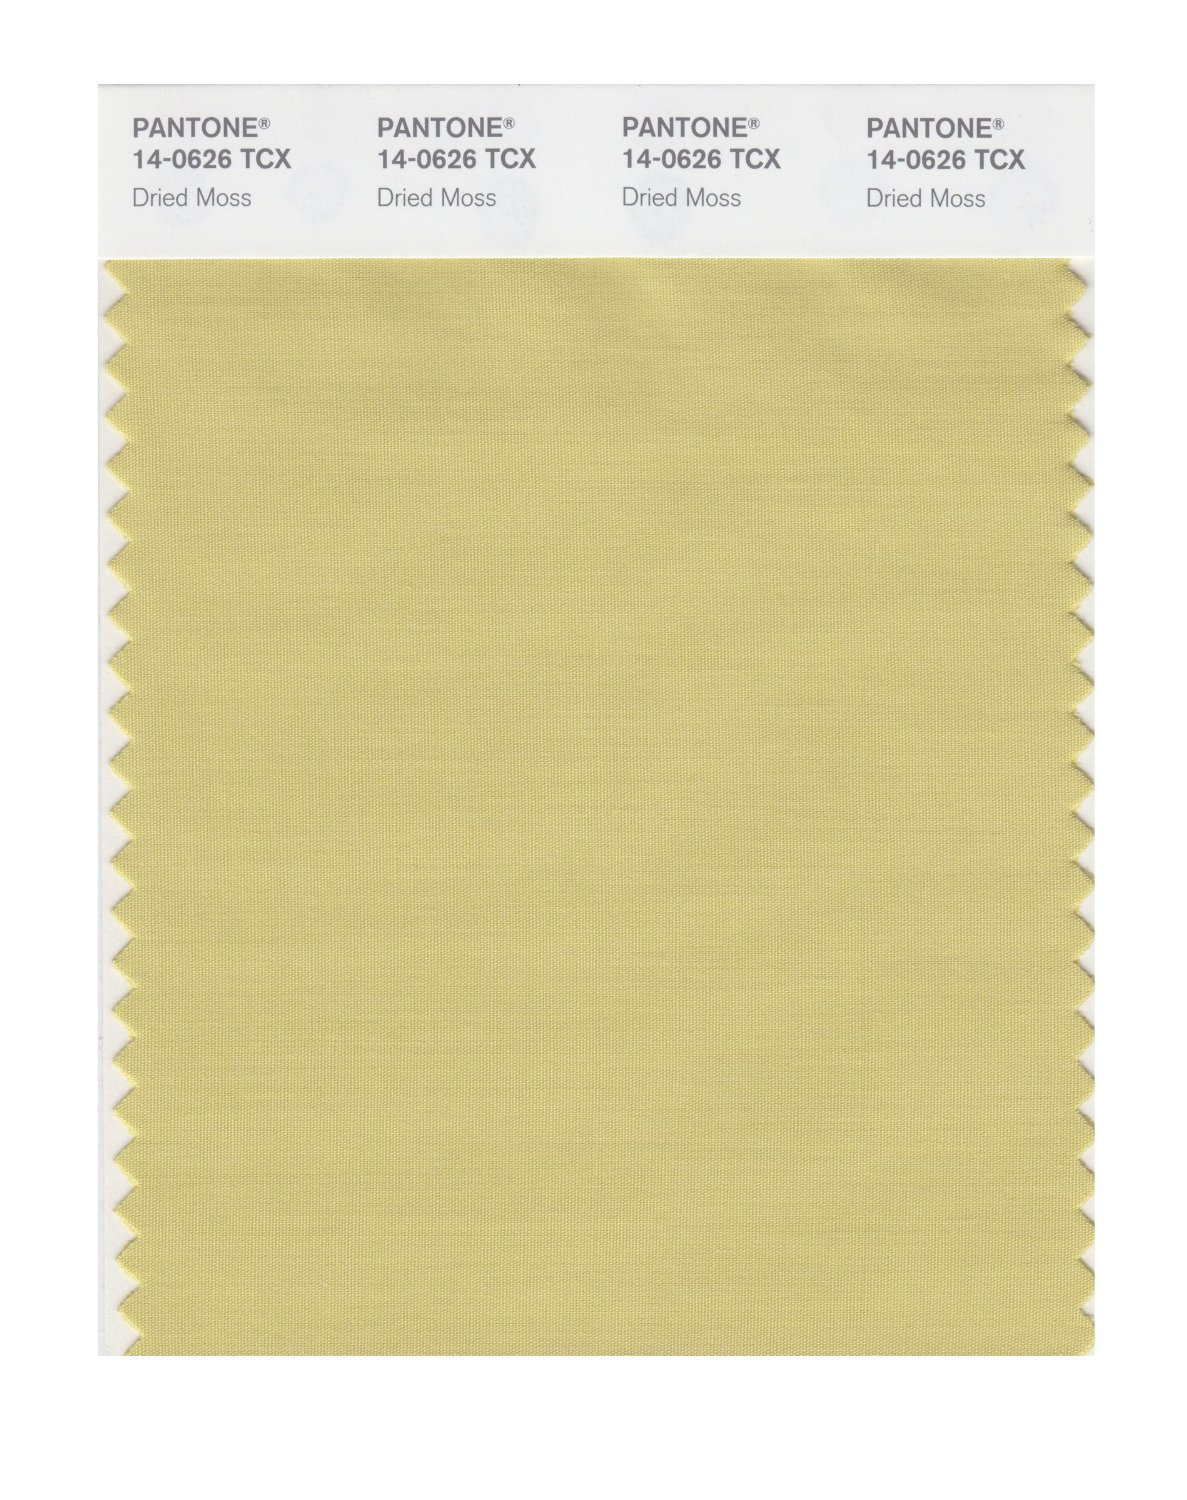 Pantone Smart Swatch 14-0626 Dried Moss